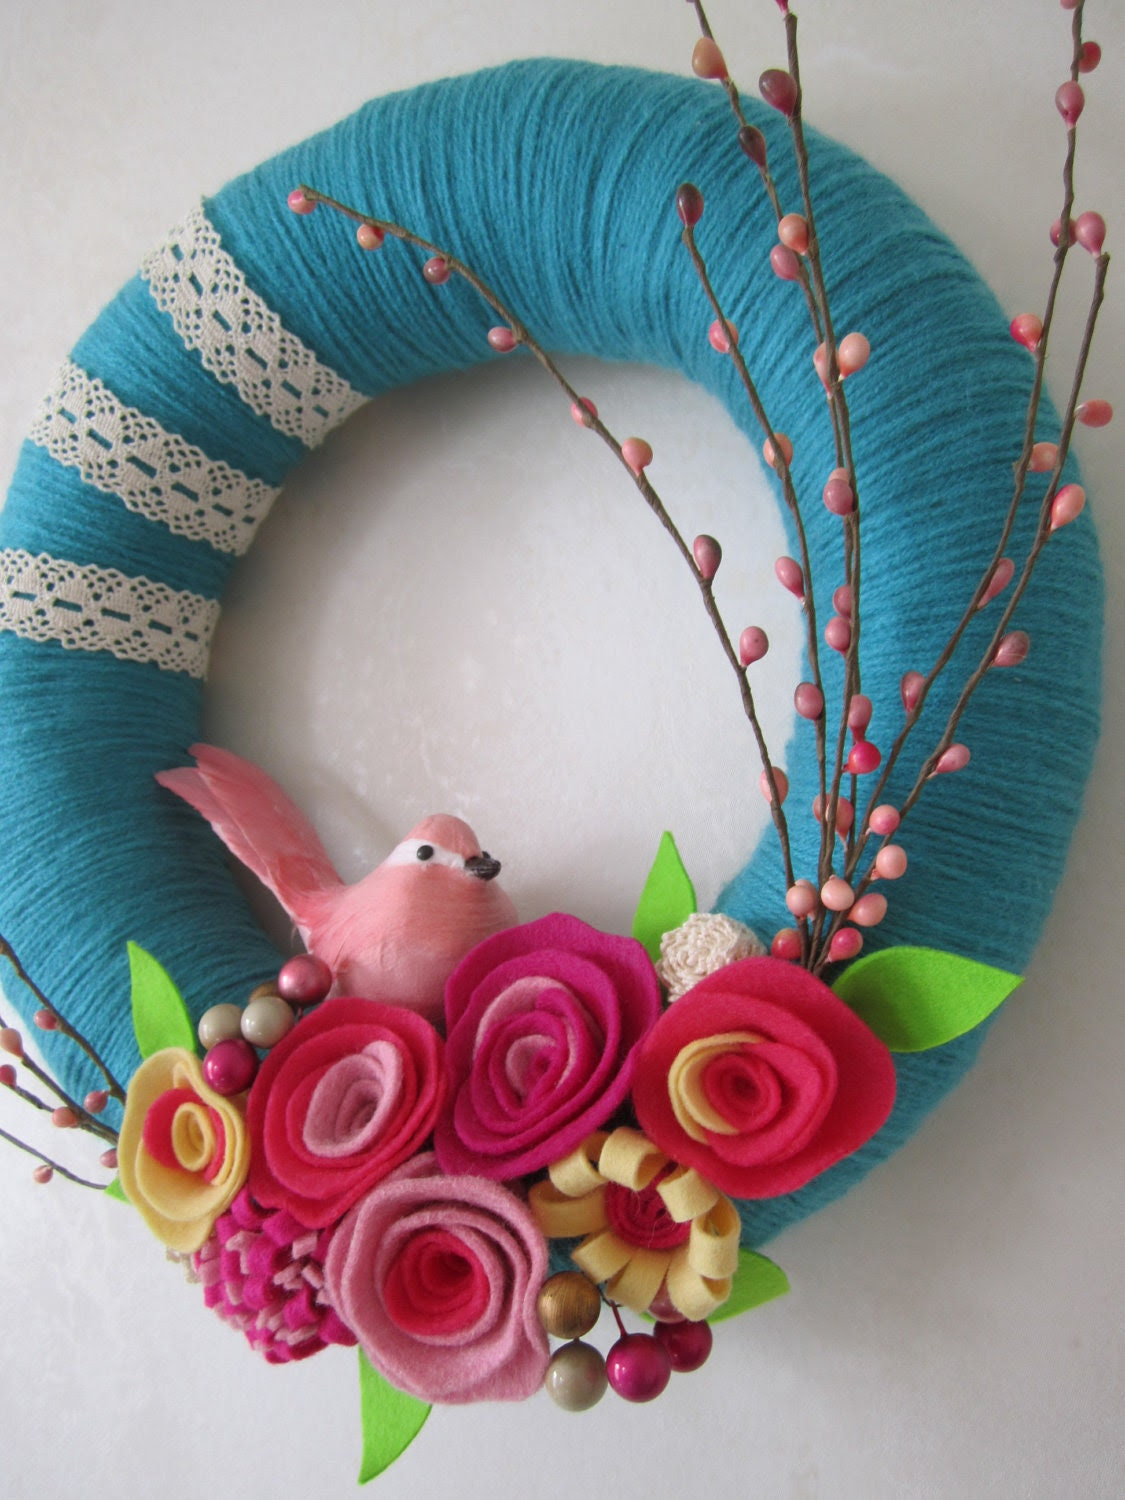 Pink Bird Teal Yarn Wreath 12""